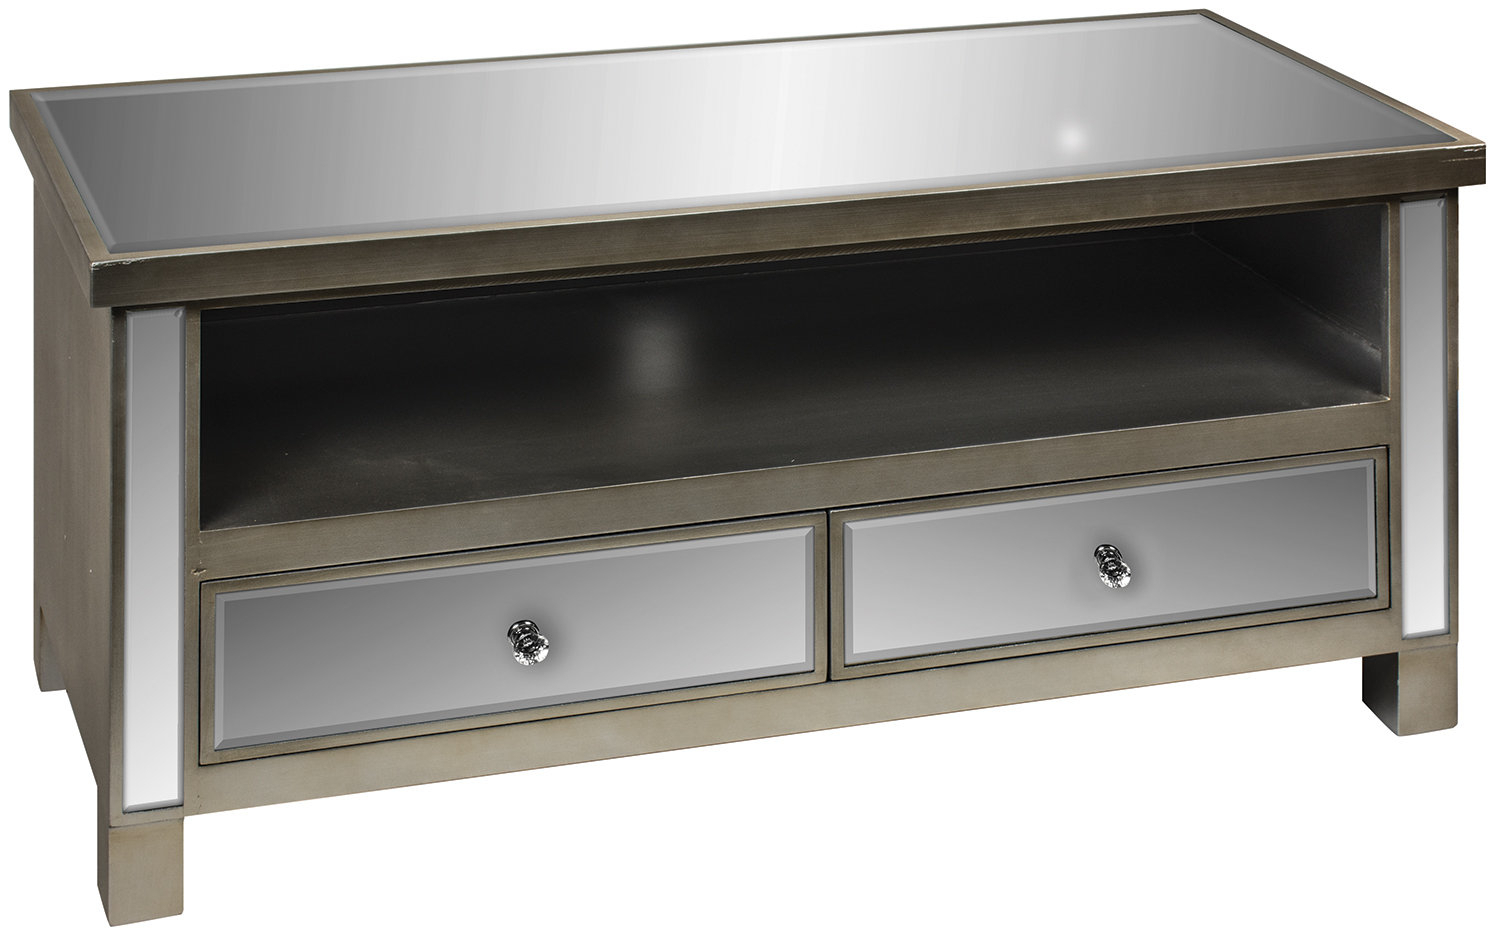 Mirrored Tv Stand | Wayfair.co.uk inside Natural Wood Mirrored Media Console Tables (Image 17 of 30)